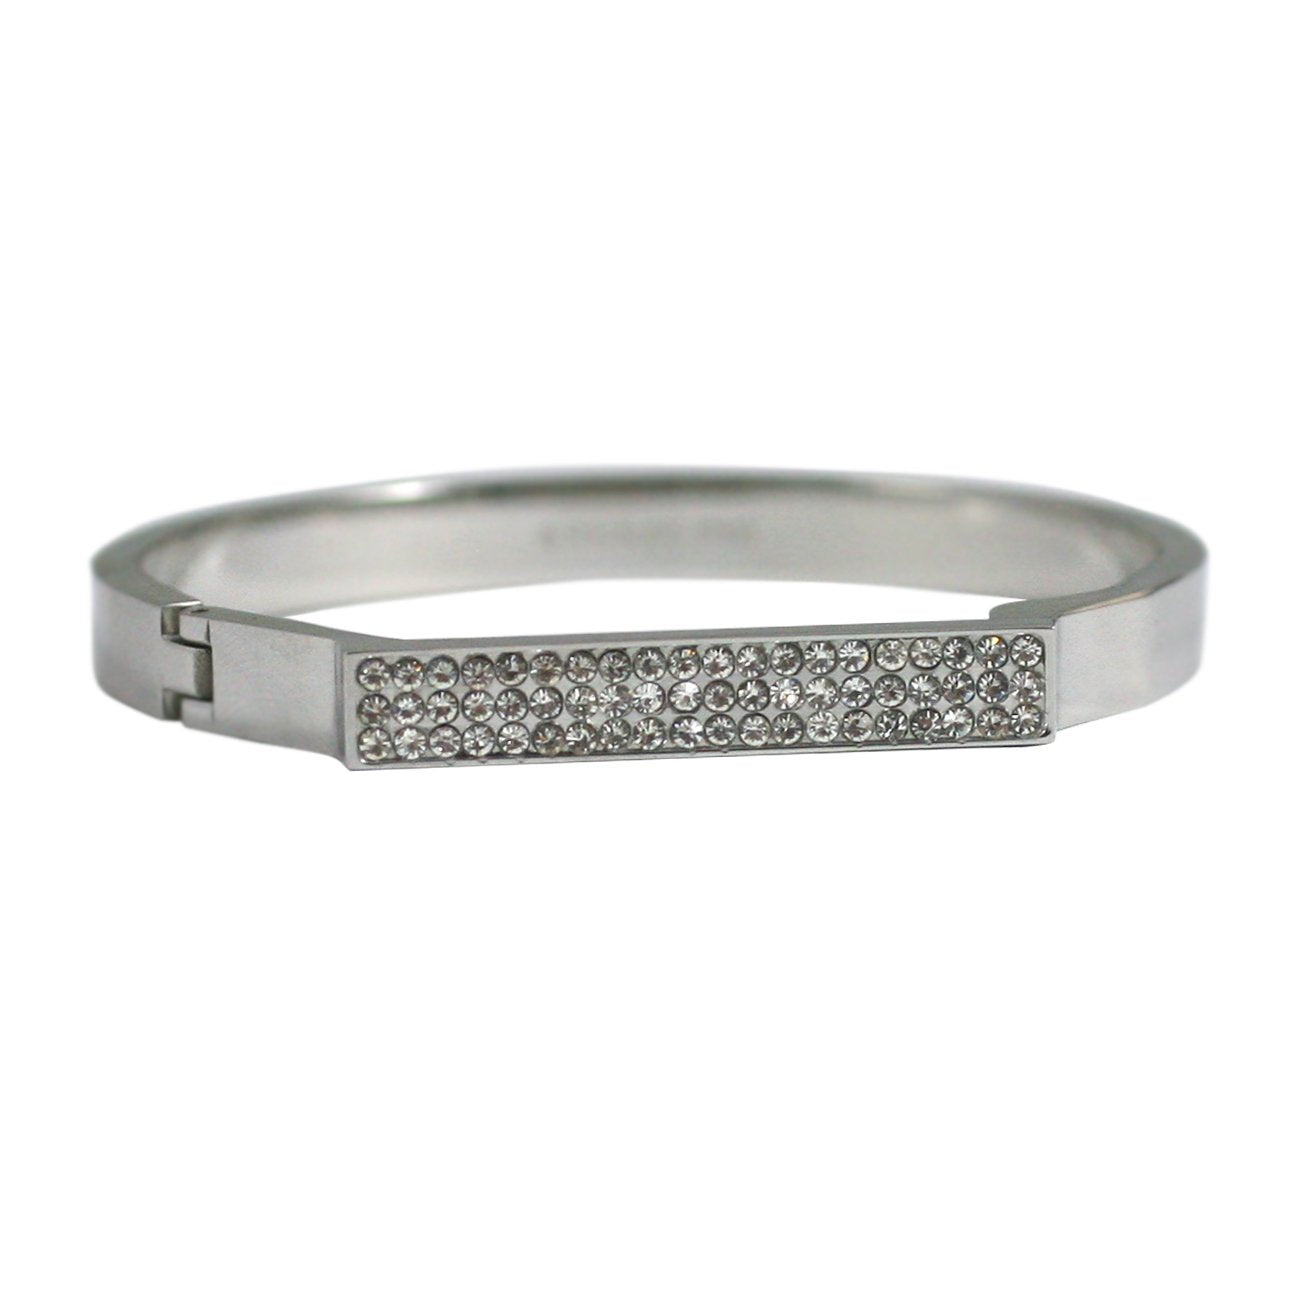 Fine Bracelet with Paved Crystal Bar Stainless Steel 655B1203